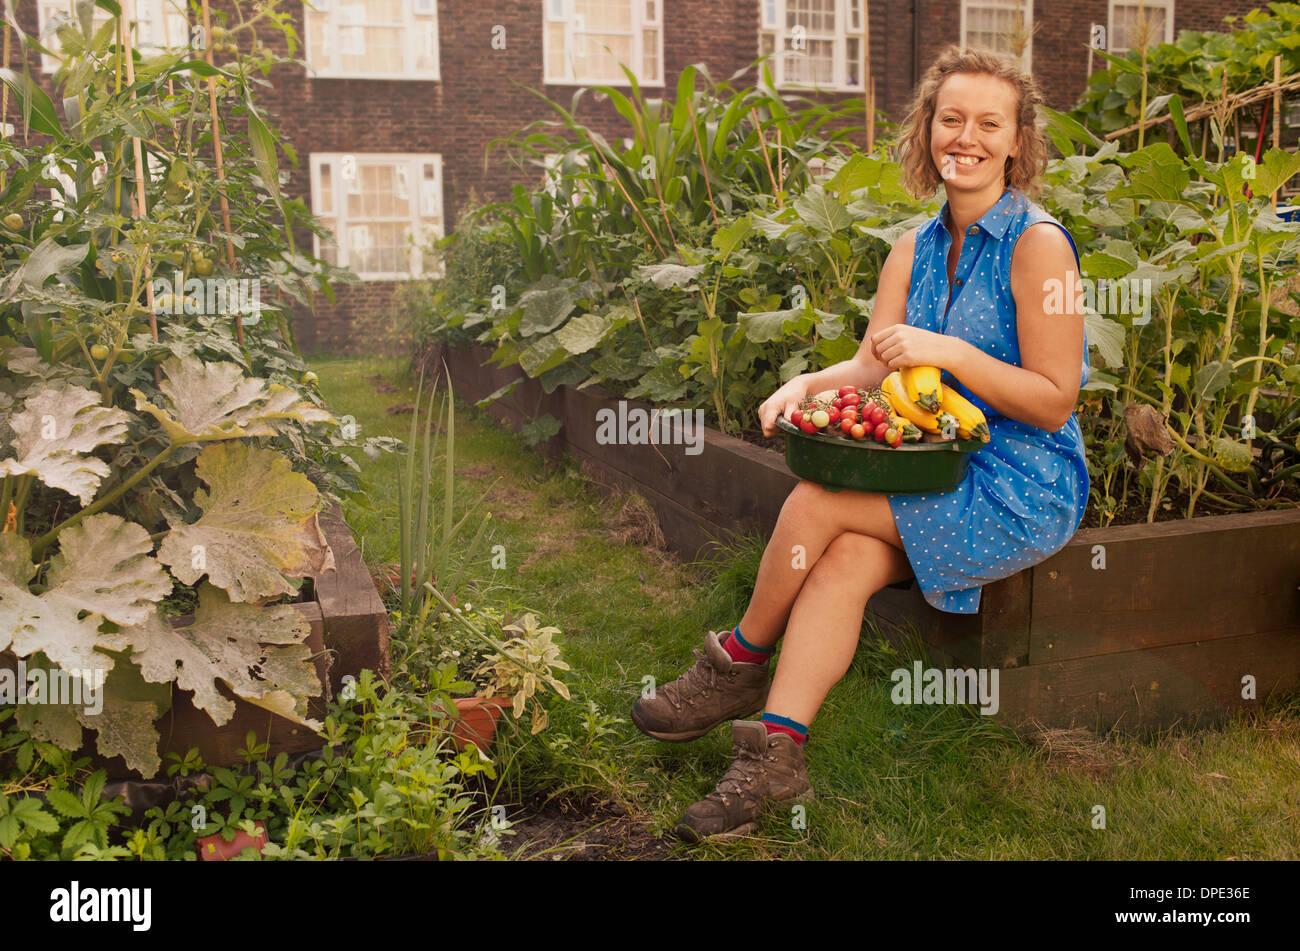 Young woman with harvested vegetables on council estate allotment - Stock Image